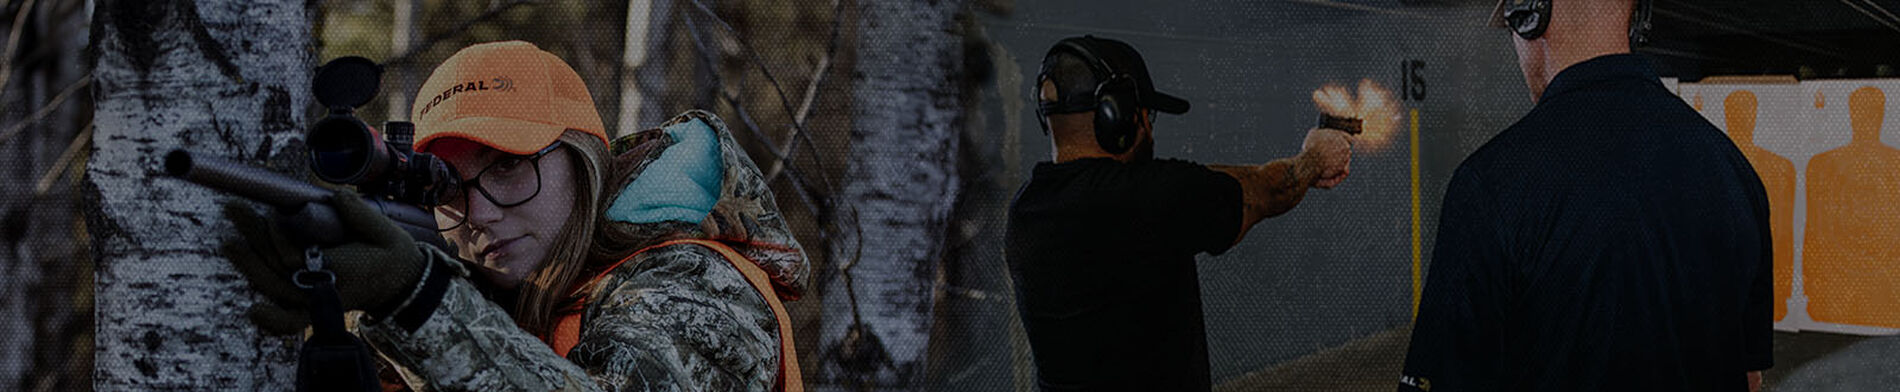 Lady shooting a rifle outside beside a guy shooting a handgun at an indoor range